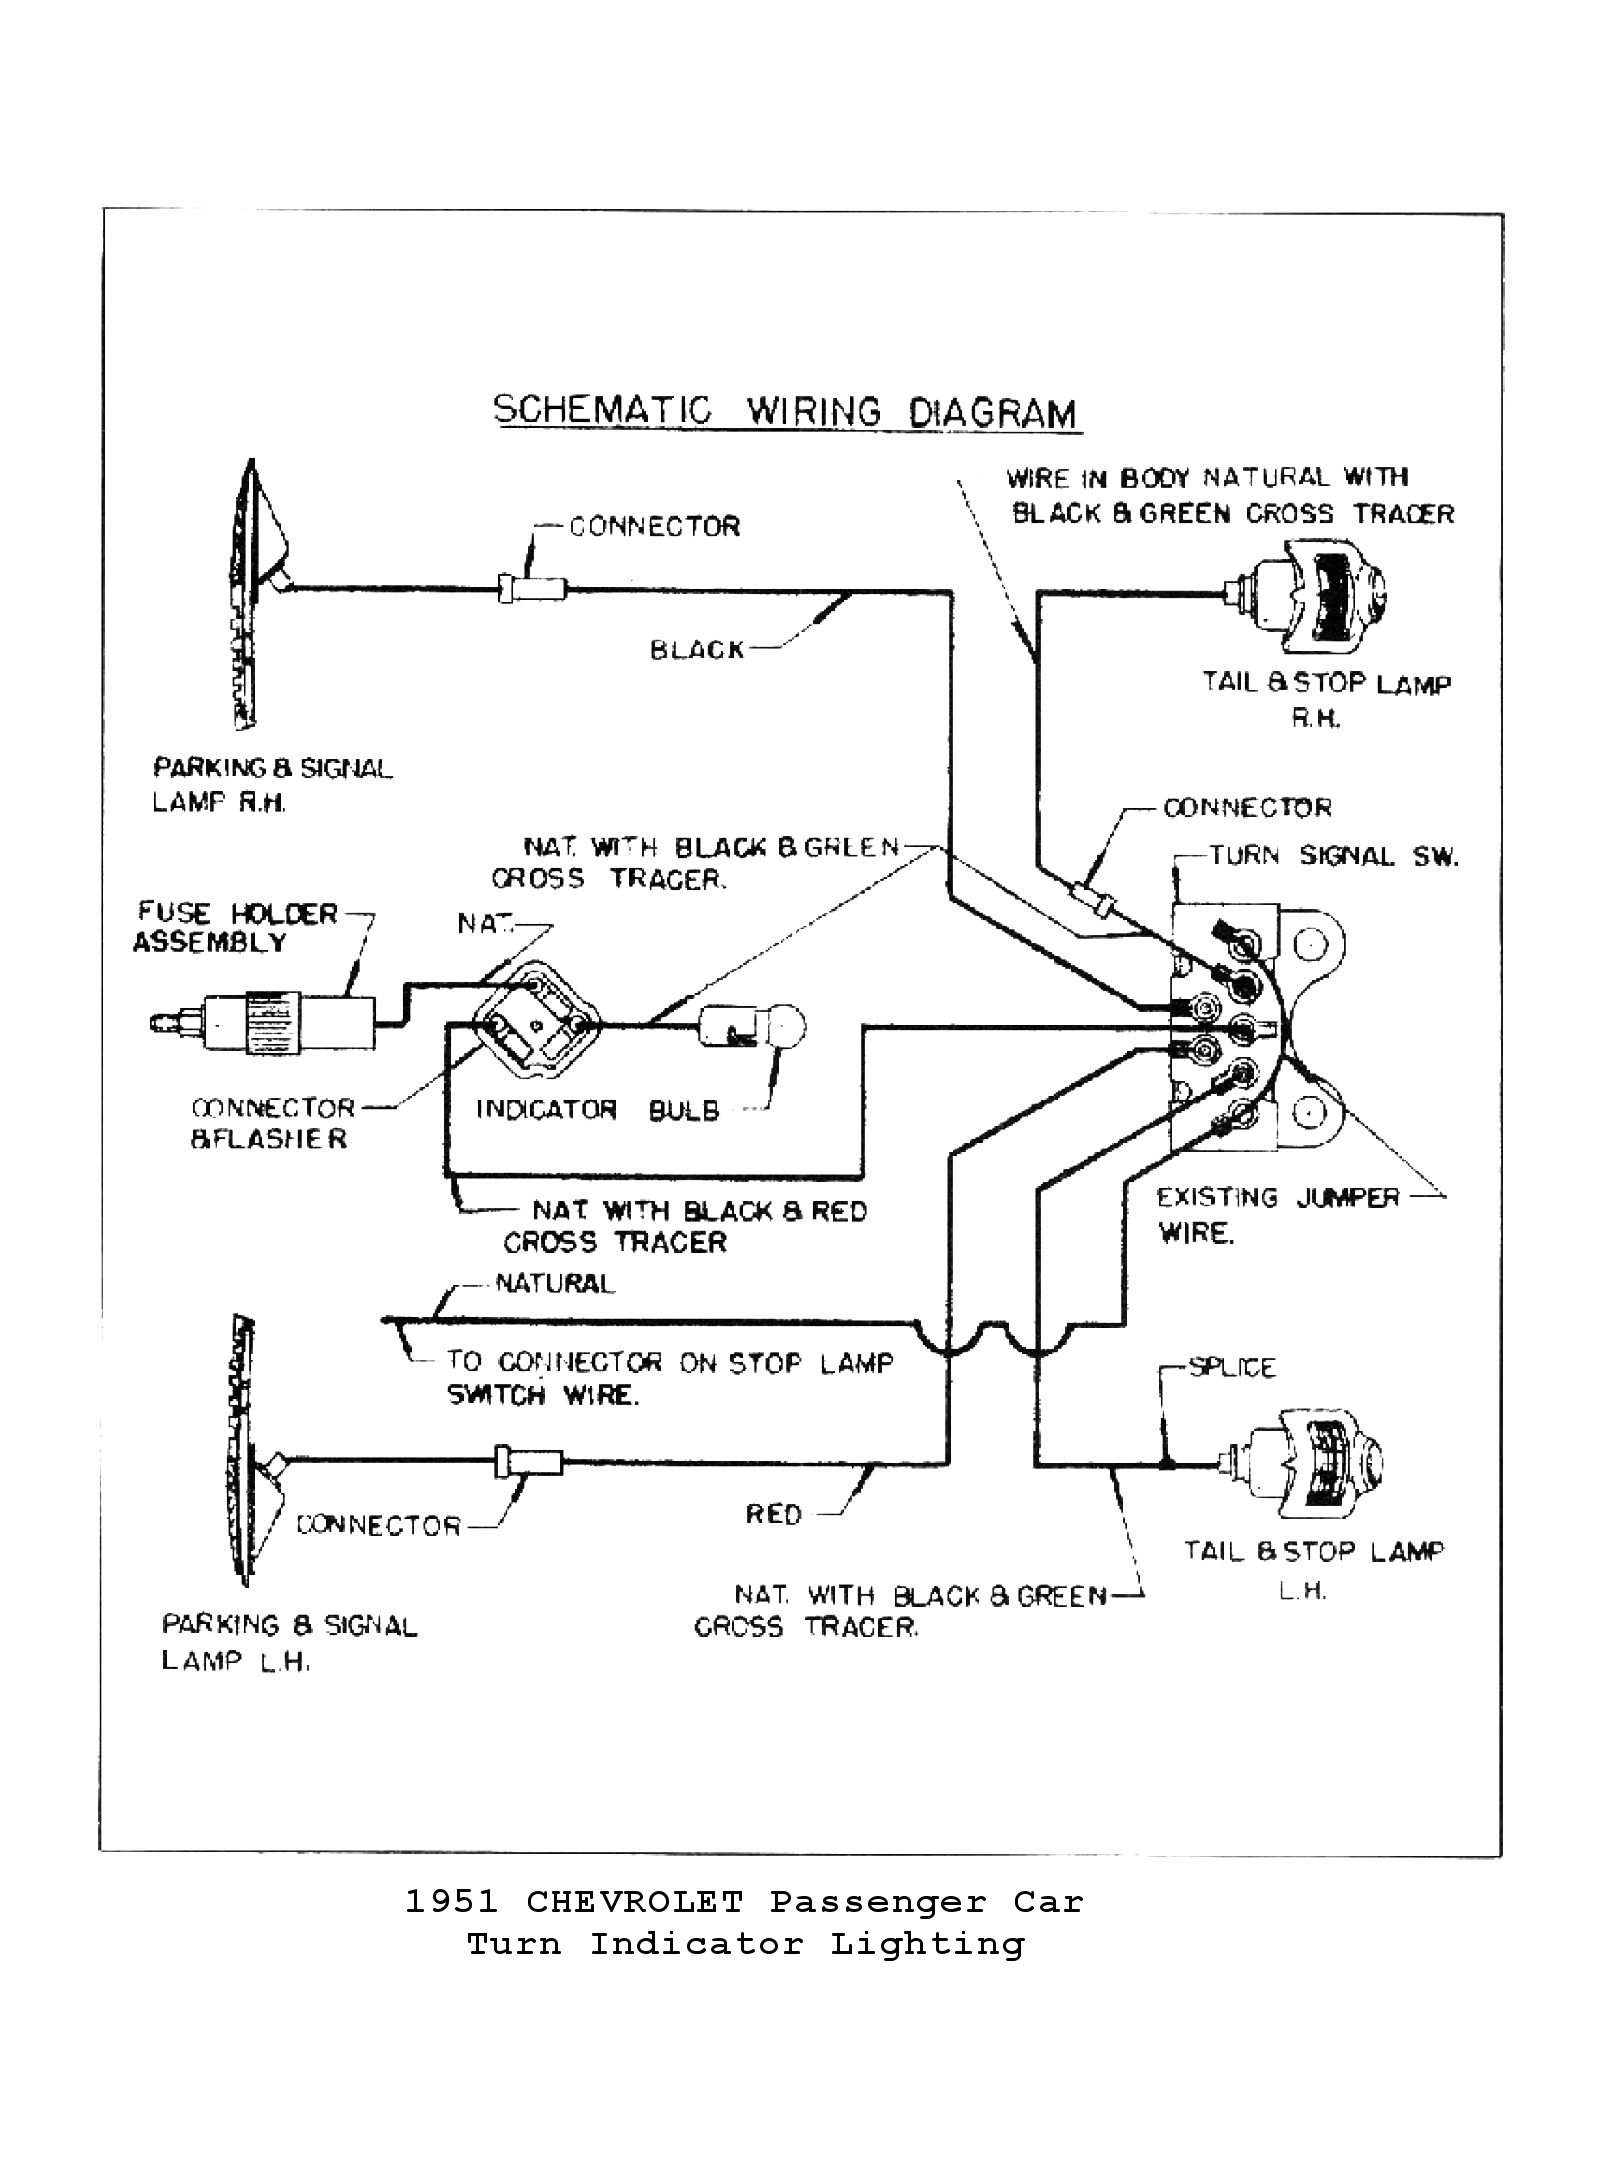 5152turnsignals chevy wiring diagrams 1950 chevy truck wiring diagram at honlapkeszites.co